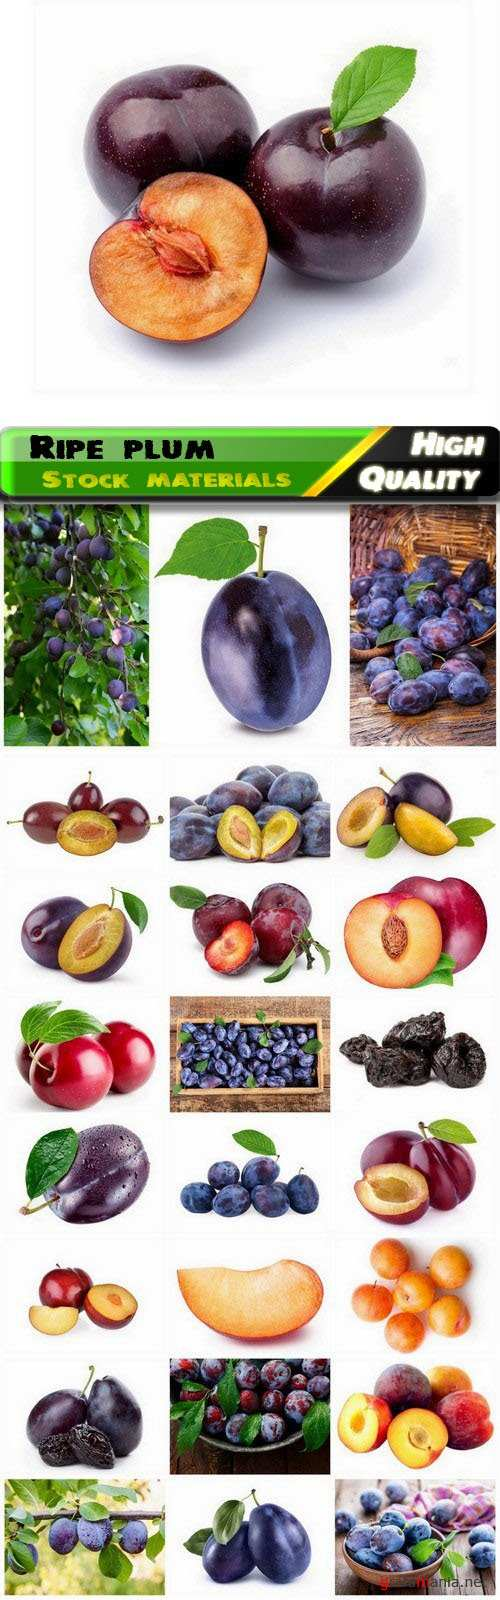 Different varieties of fruit pink and purple plum 25 HQ Jpg